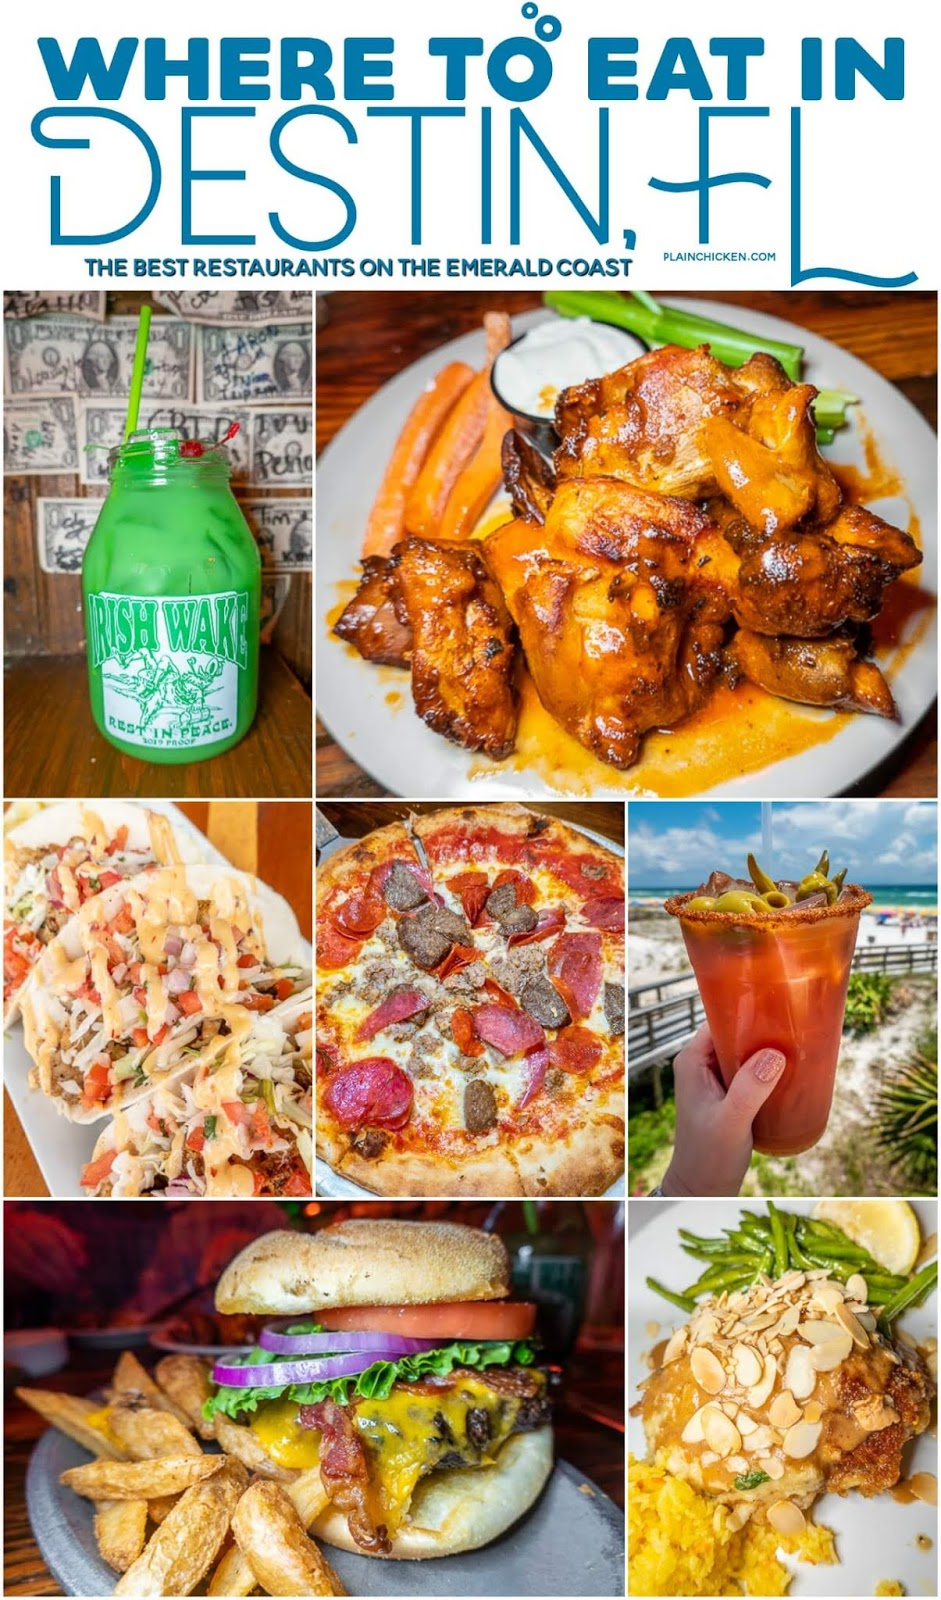 Where To Eat In Destin Fl The Best Places To Eat In The Destin Florida Area Drinks Restaurant On The Beach Destin Florida Restaurants Florida Restaurants